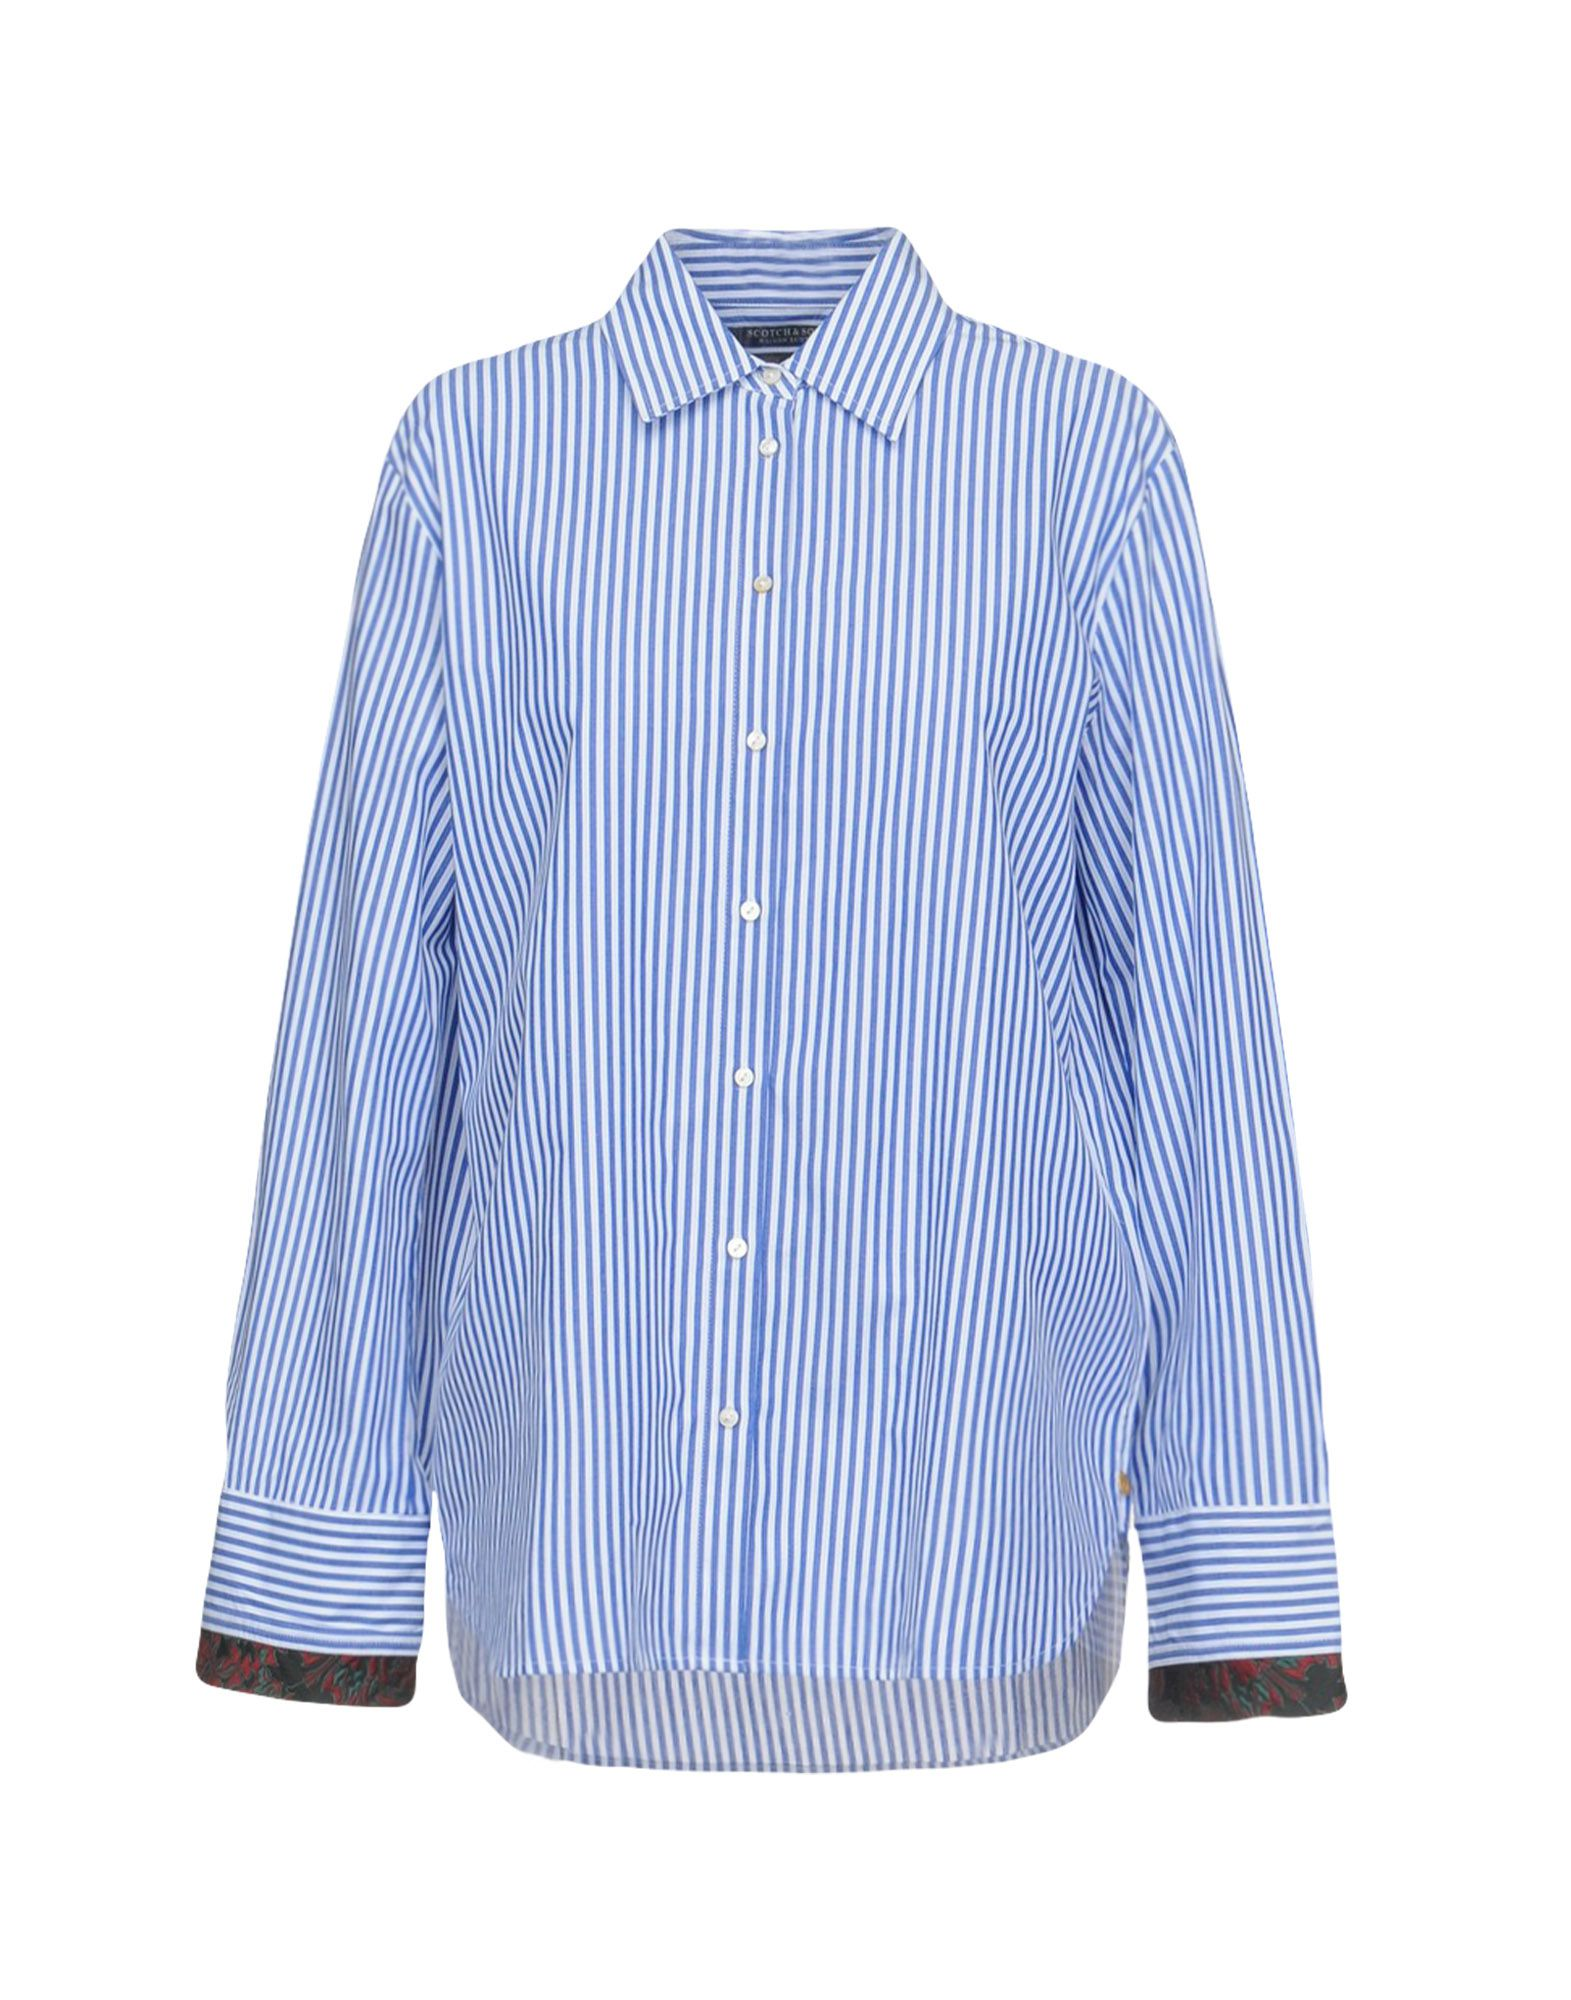 MAISON SCOTCH Striped Shirt in Blue